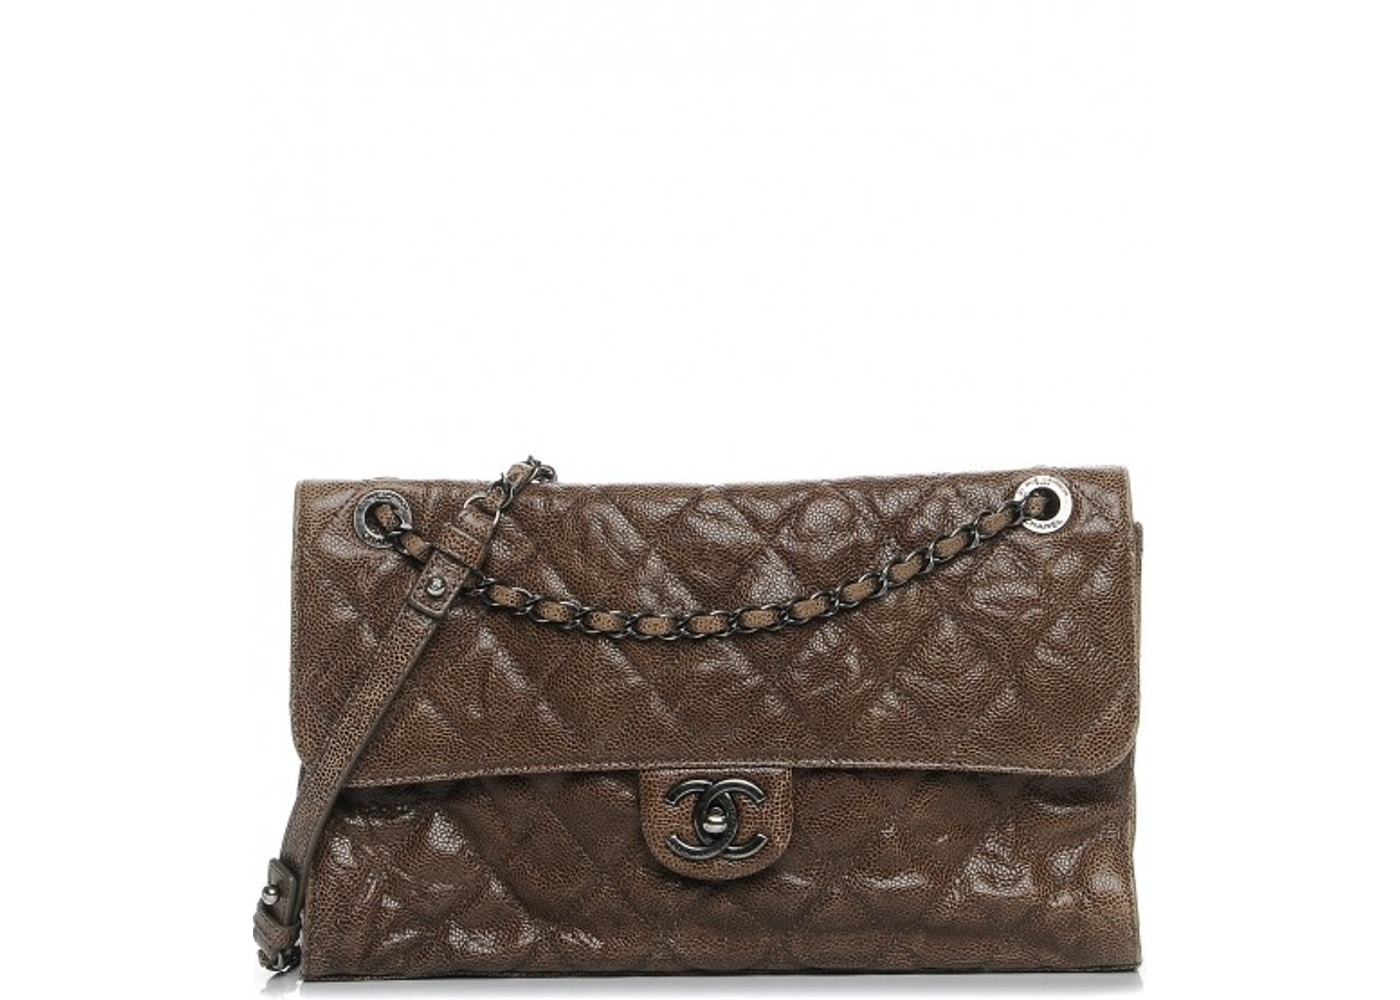 7807c8462109 Chanel CC Crave Flap CC Crave Quilted Crumple/Grained Jumbo